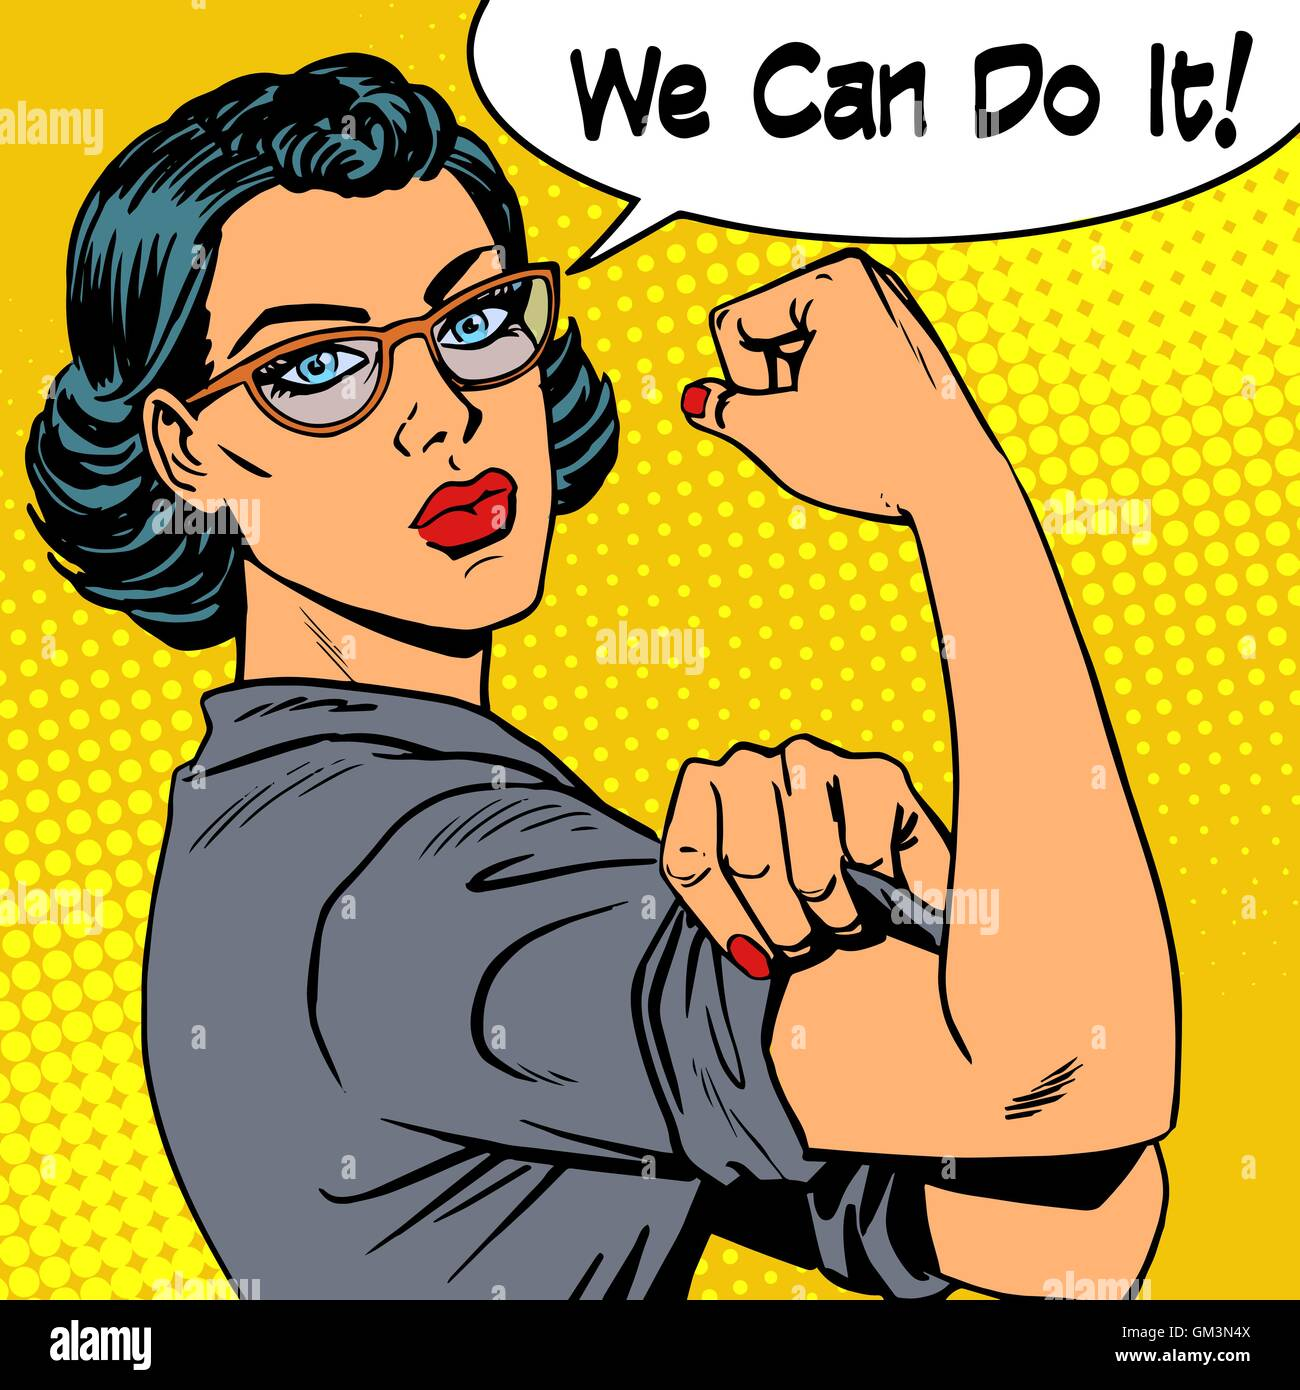 Woman with glasses we can do it the power of feminism - Stock Image